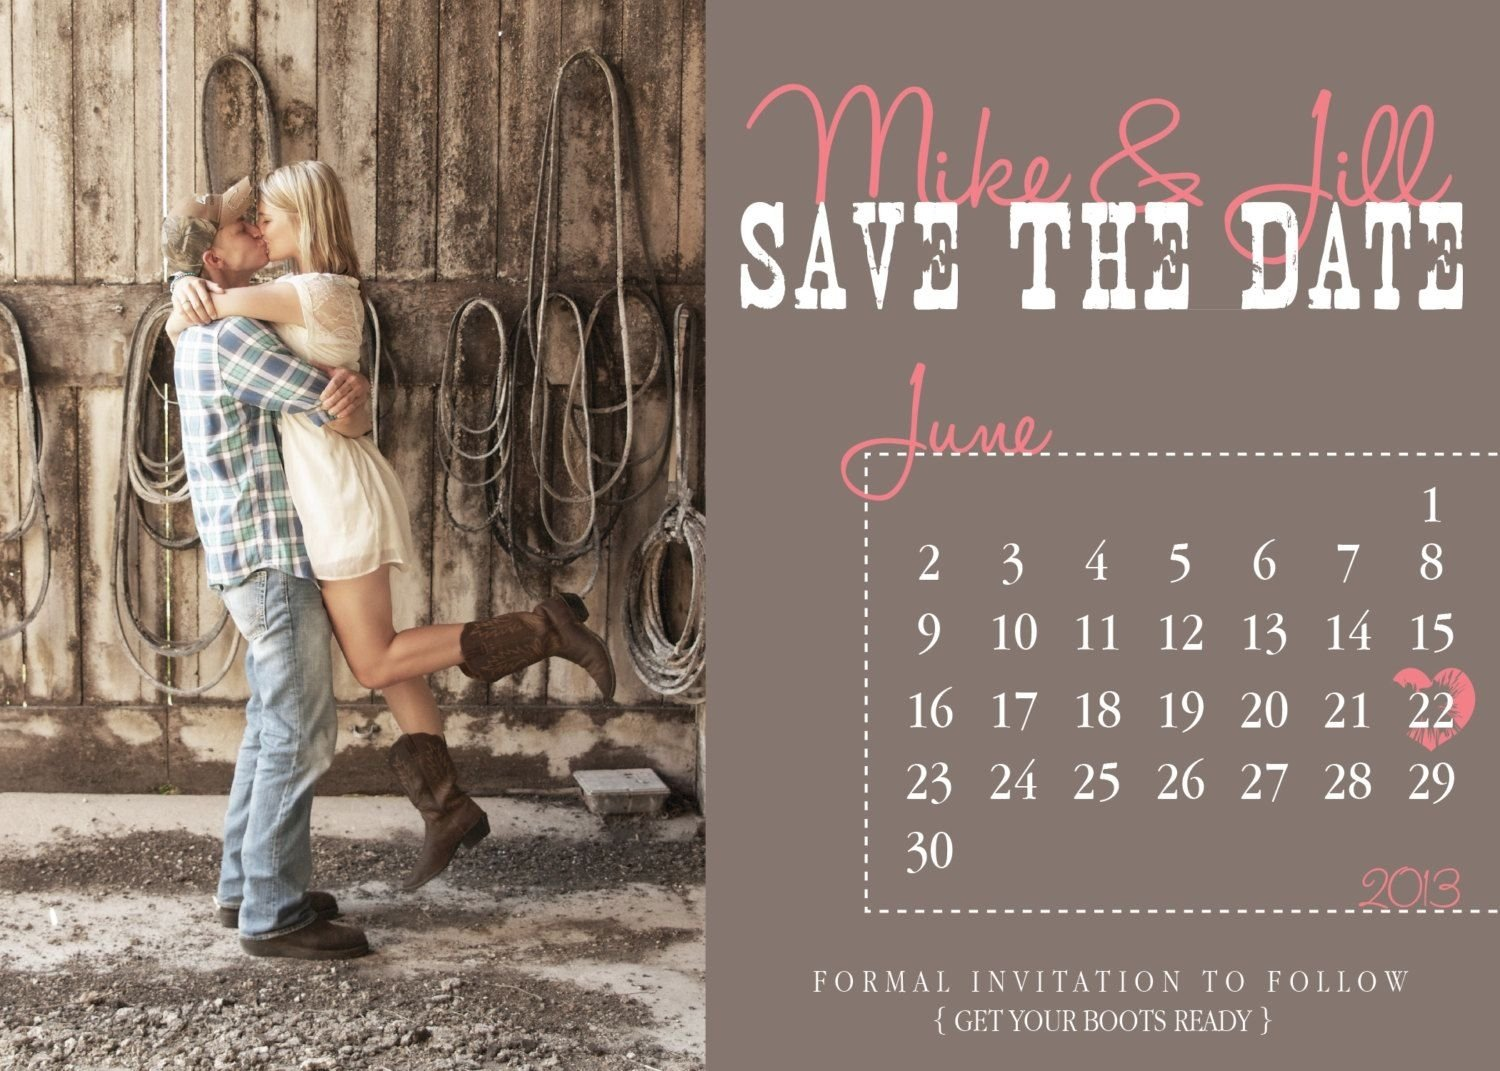 10 Elegant Save The Date Ideas Pinterest country save the dates country calendar save the date wedding 2020